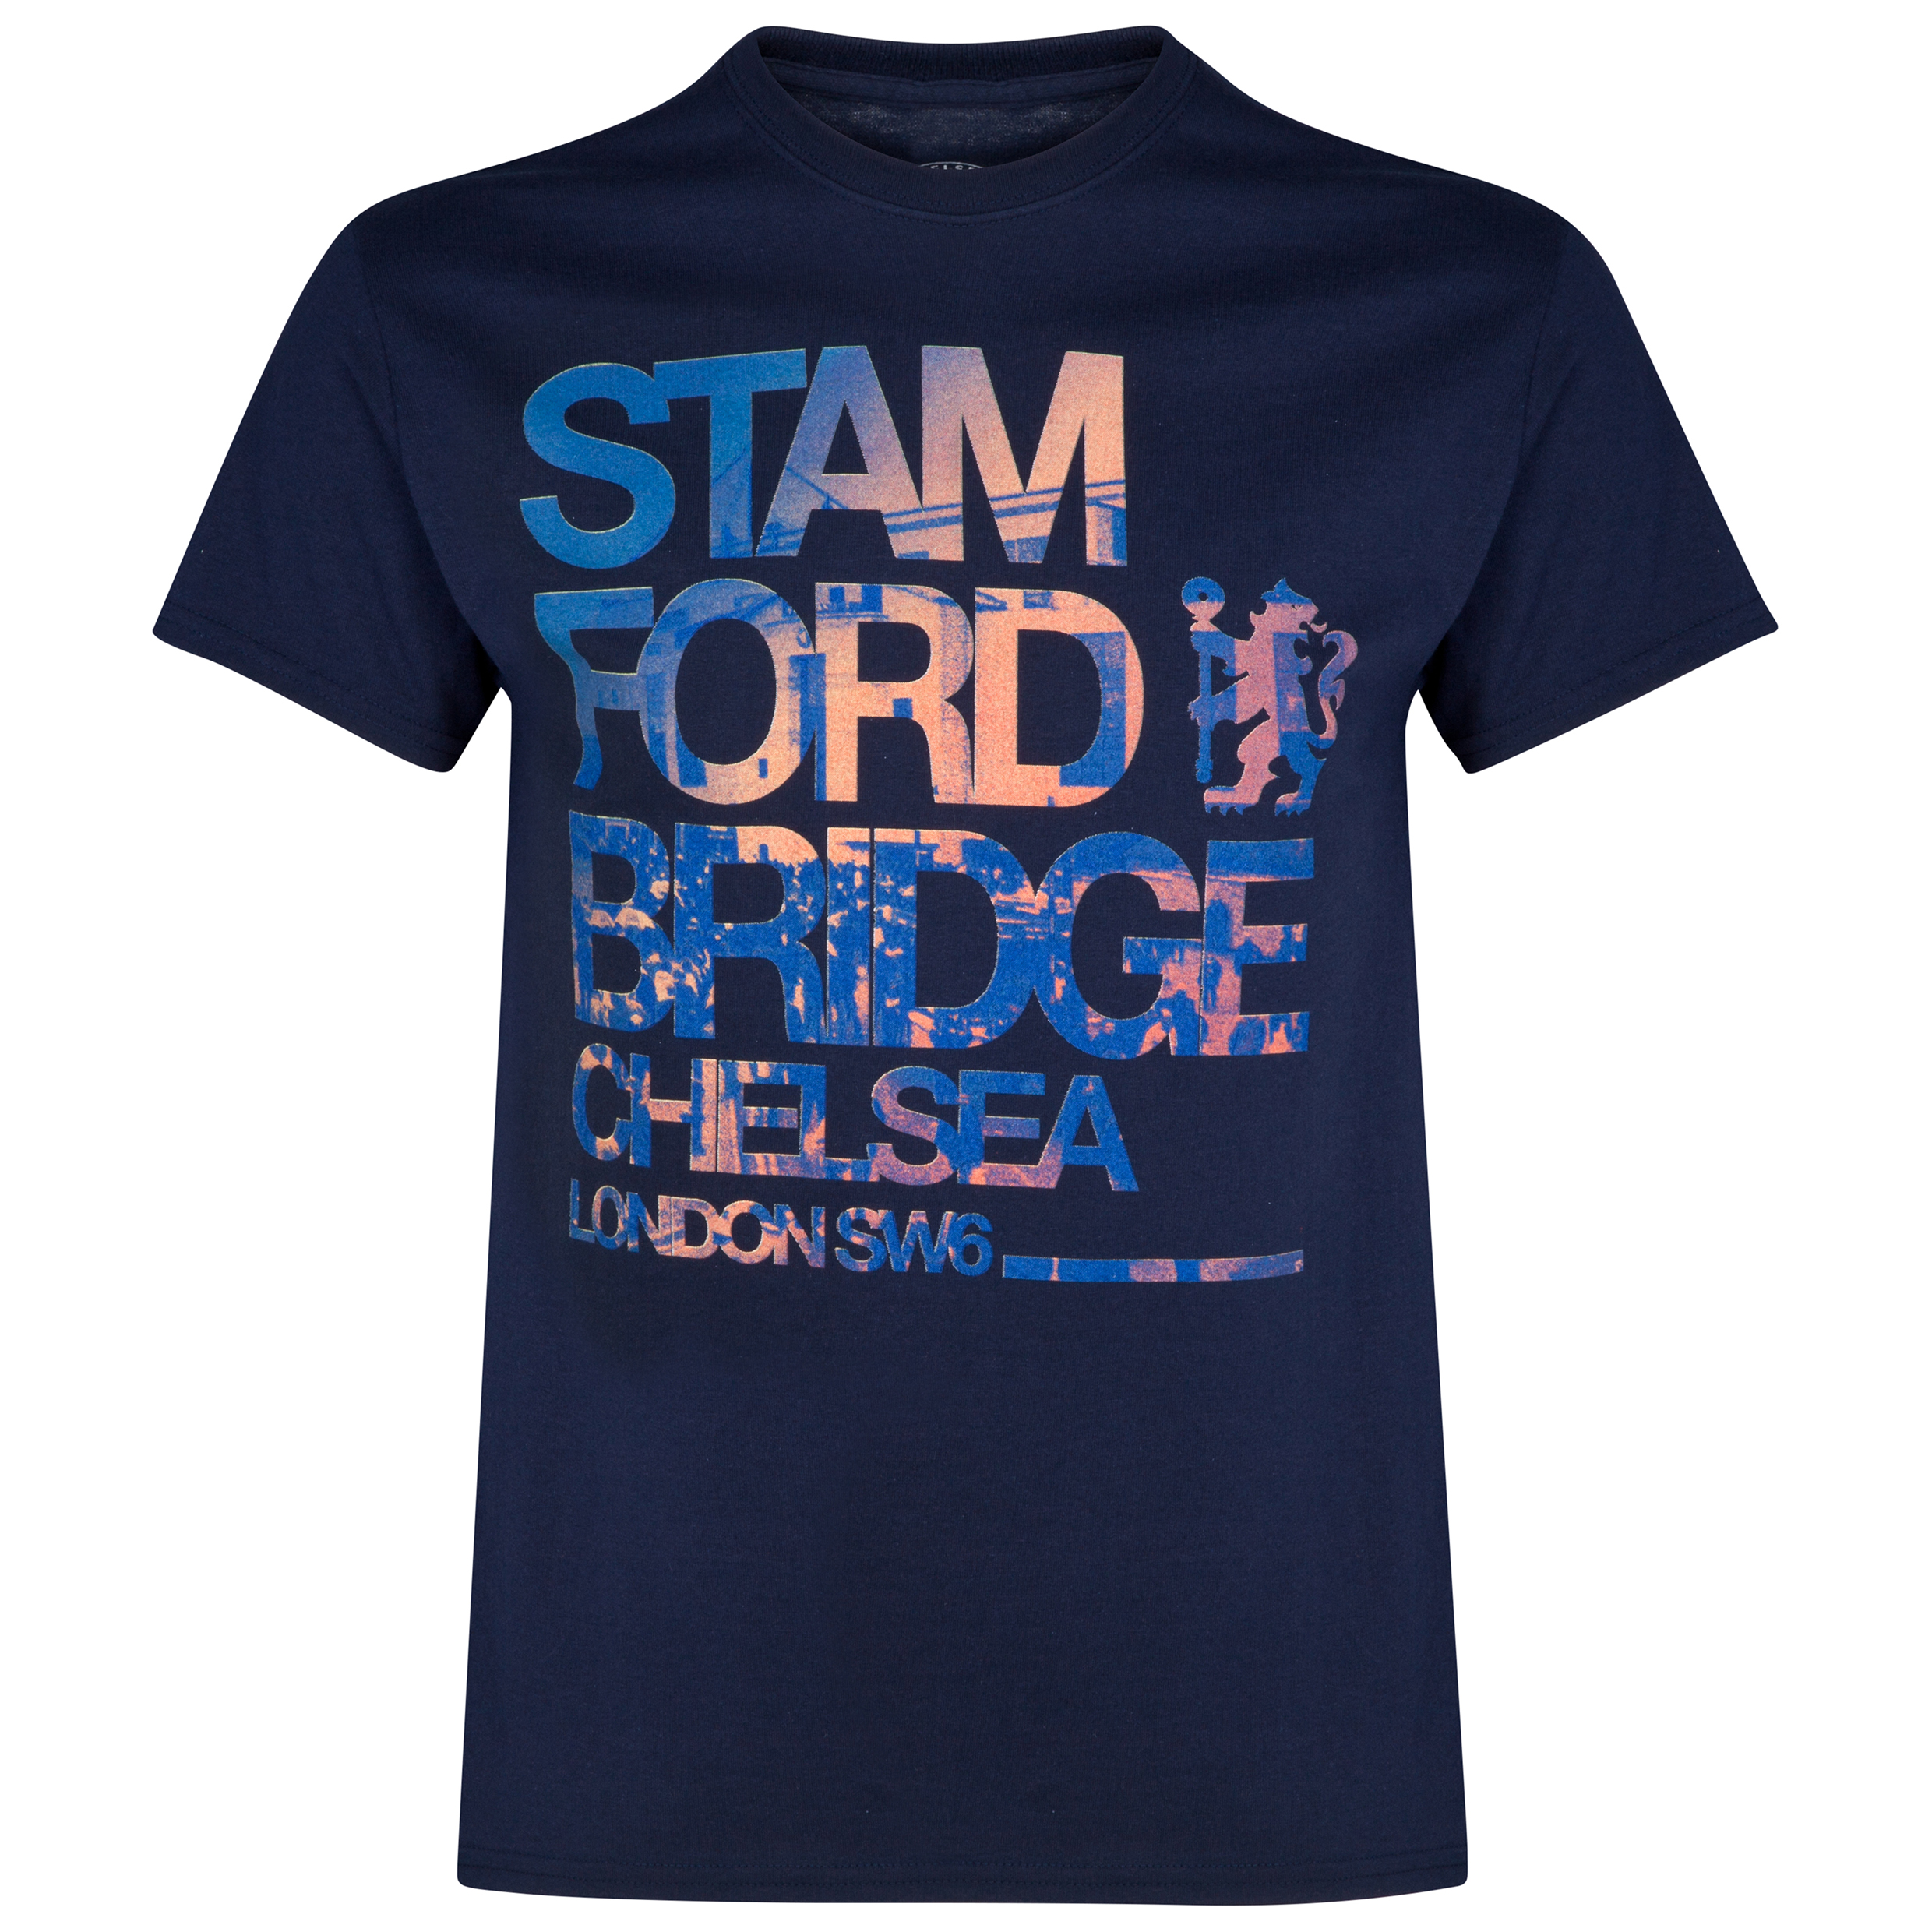 Chelsea Stamford Bridge T-Shirt - Navy - Mens